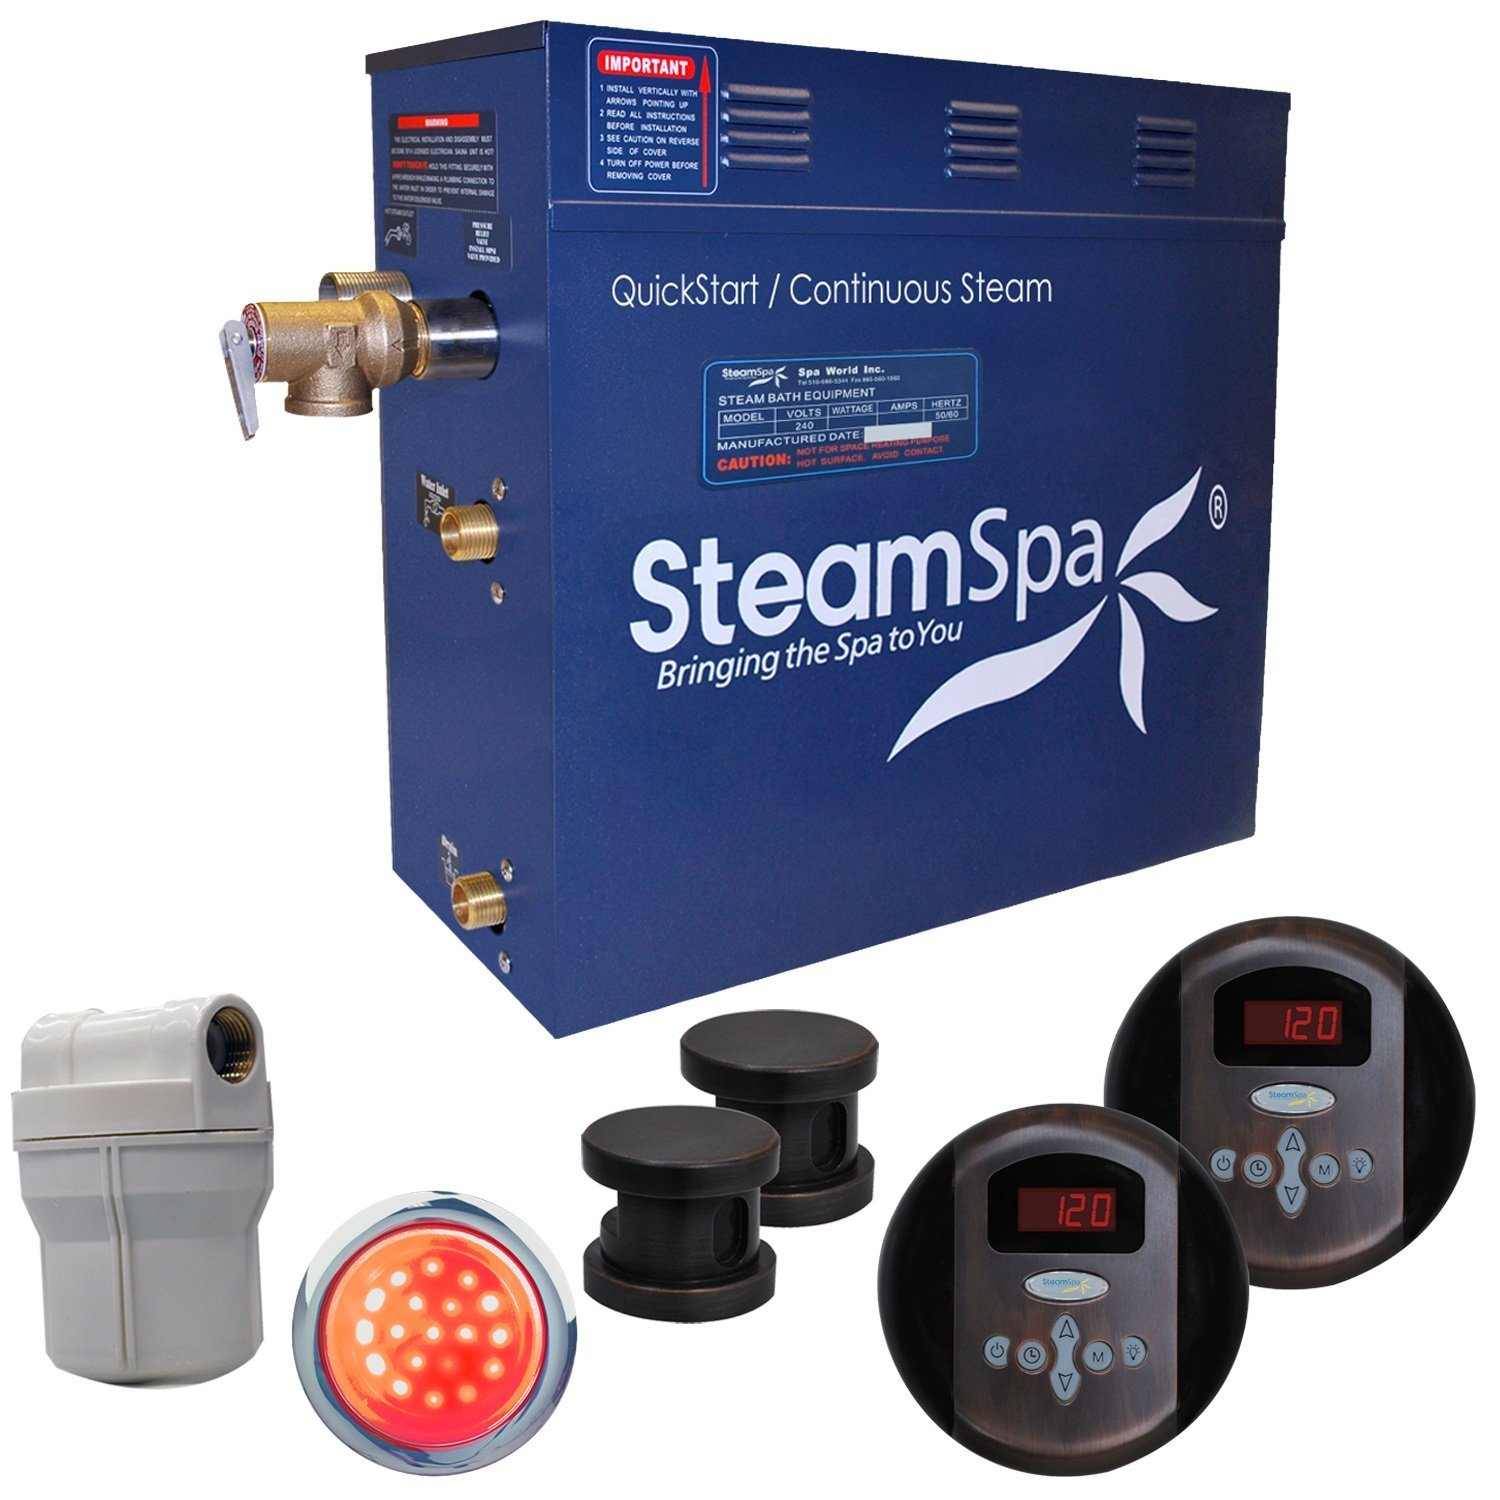 Steam Spa RY1200OB Royal 12 KW Quick Start Acu-Steam Bath Generator Package, Oil Rubbed Bronze by Steam Spa